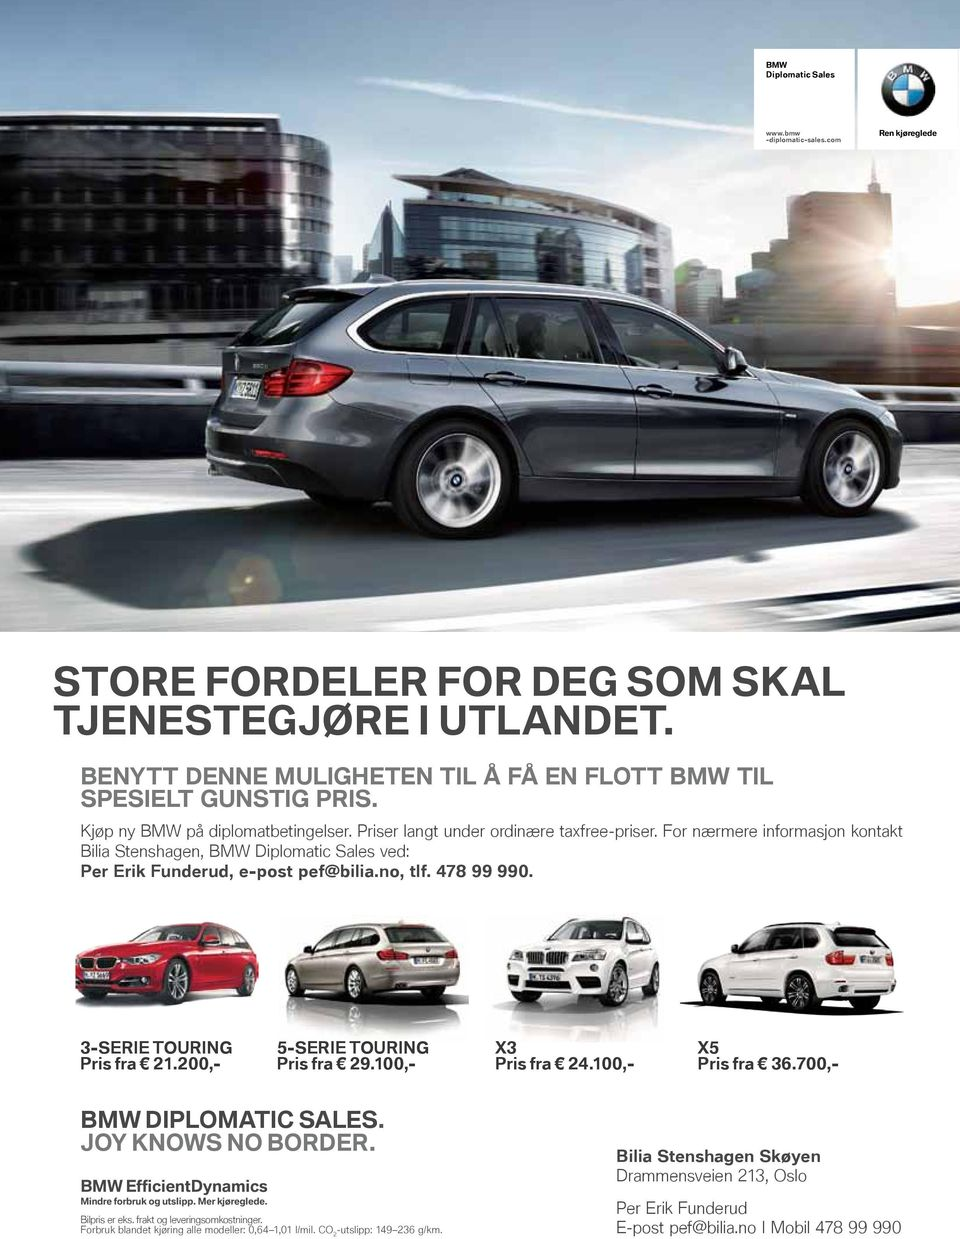 478 99 990. 3-SERIE TOURING pris fra 21.200,- 5-SERIE TOURING pris fra 29.100,- X3 pris fra 24.100,- X5 pris fra 36.700,- BMW DIpLOMATIC SALES. JOy KNOWS NO BORDER.